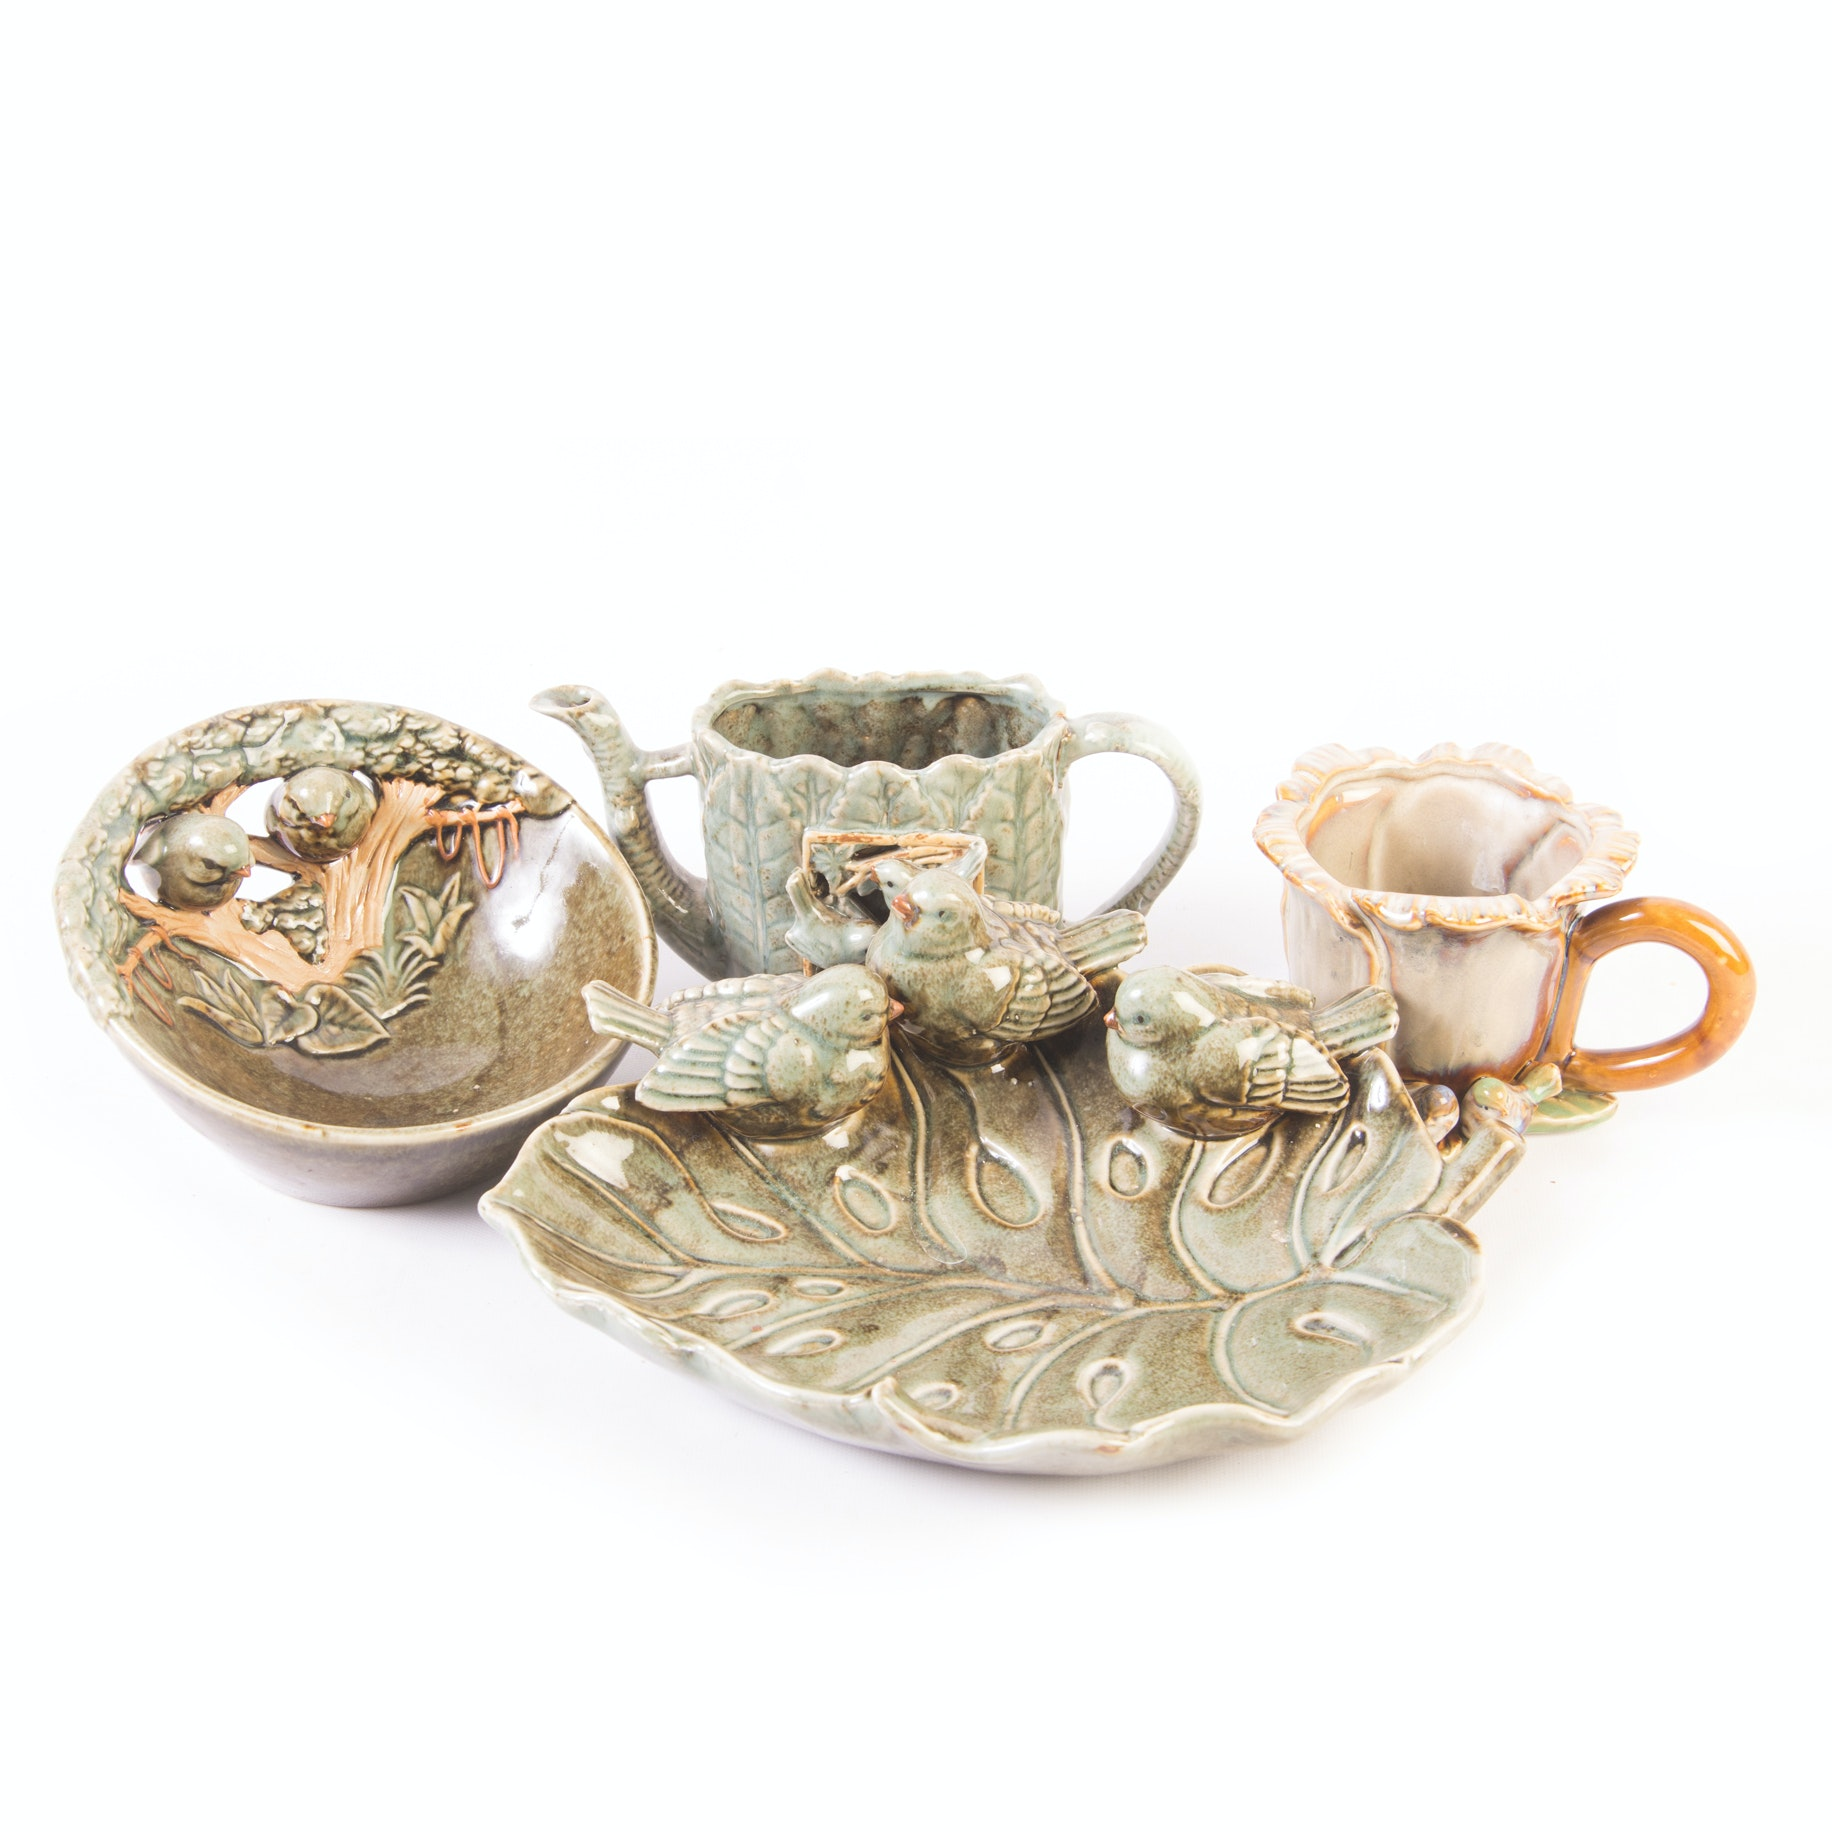 Decorative Garden Inspired Pottery Grouping